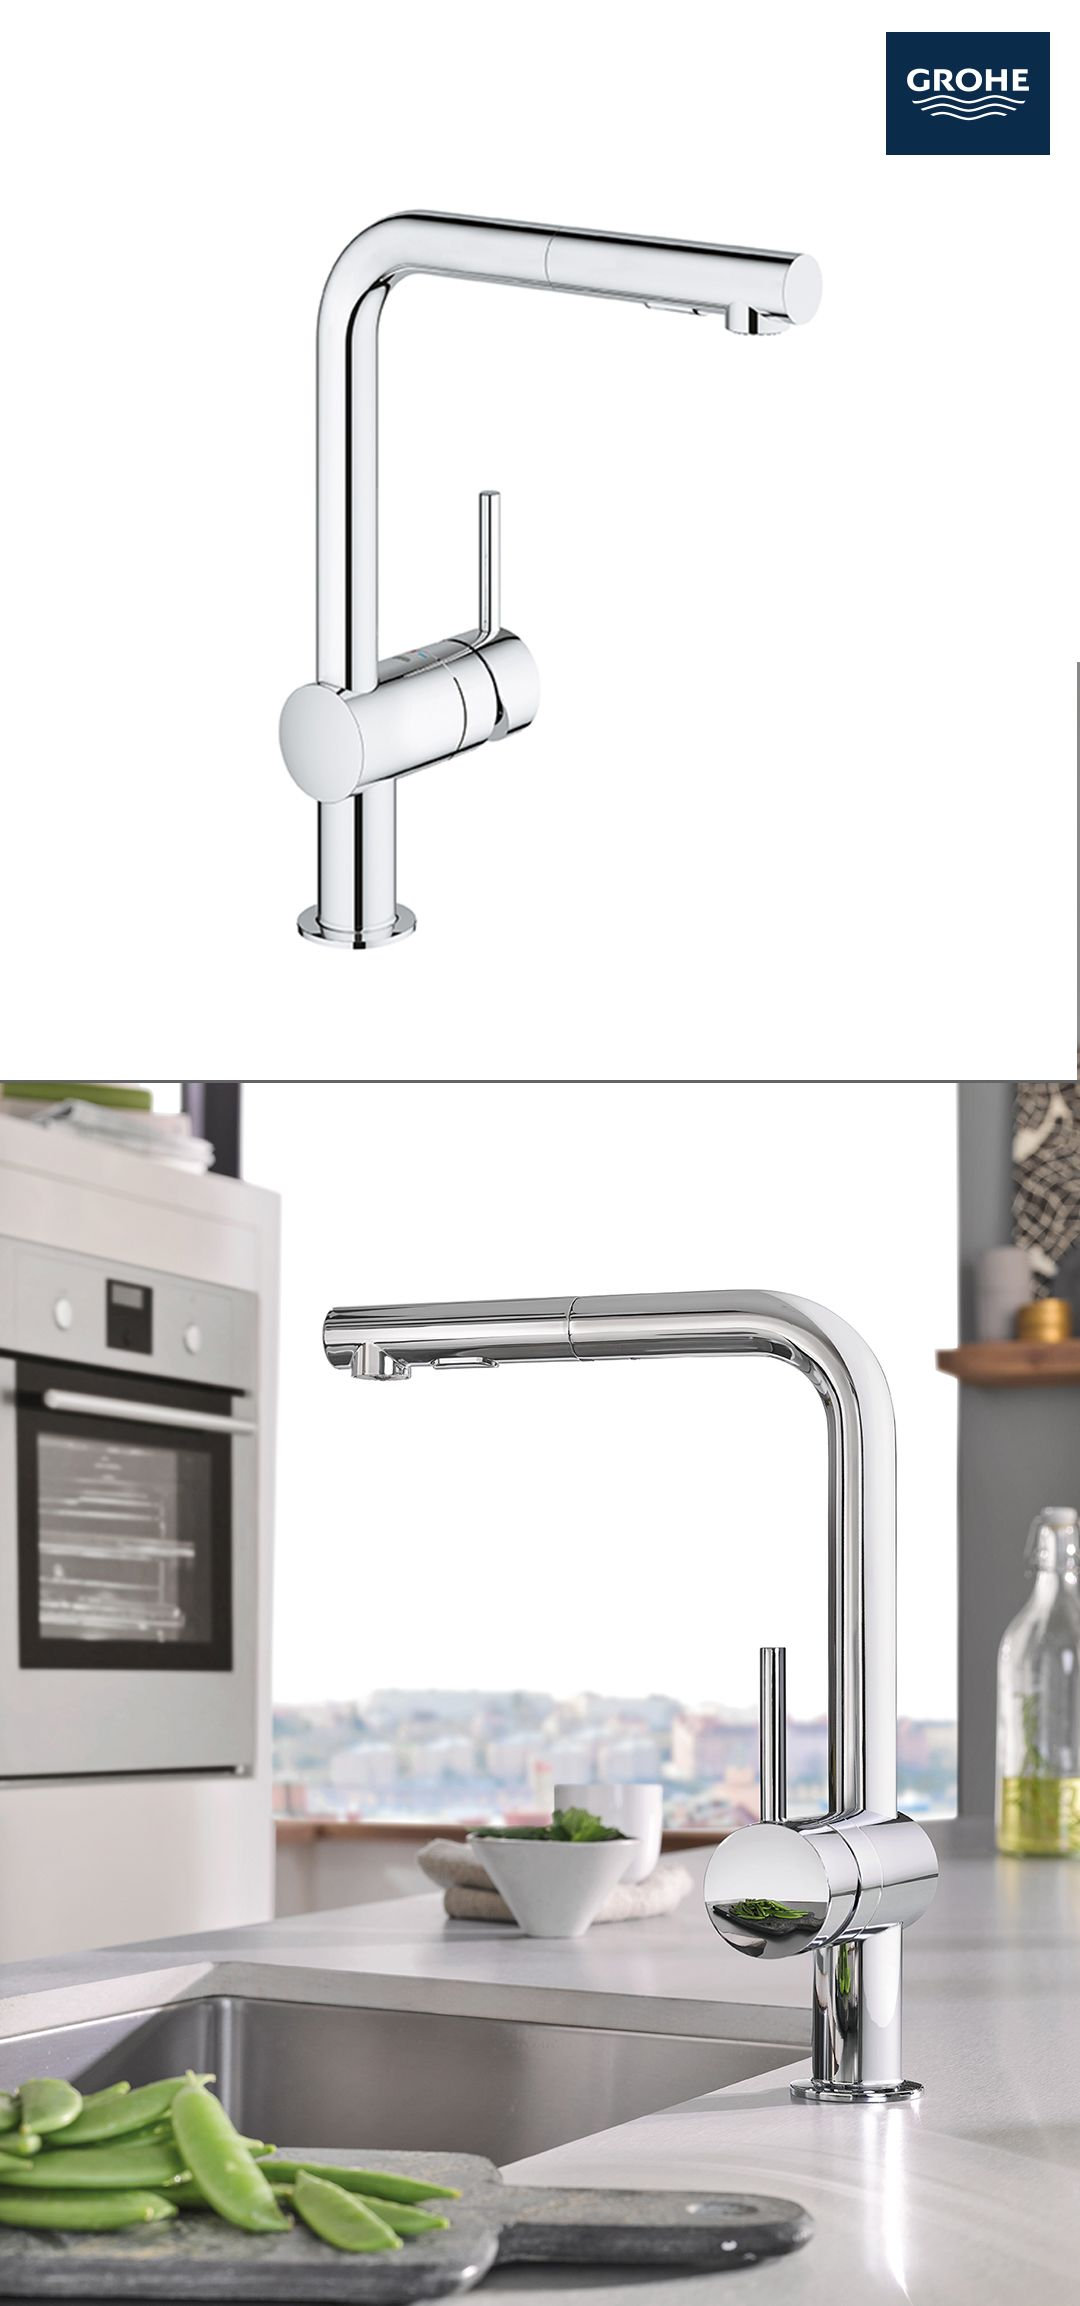 The GROHE Minta Pull-Out Kitchen Faucet combines form and ...